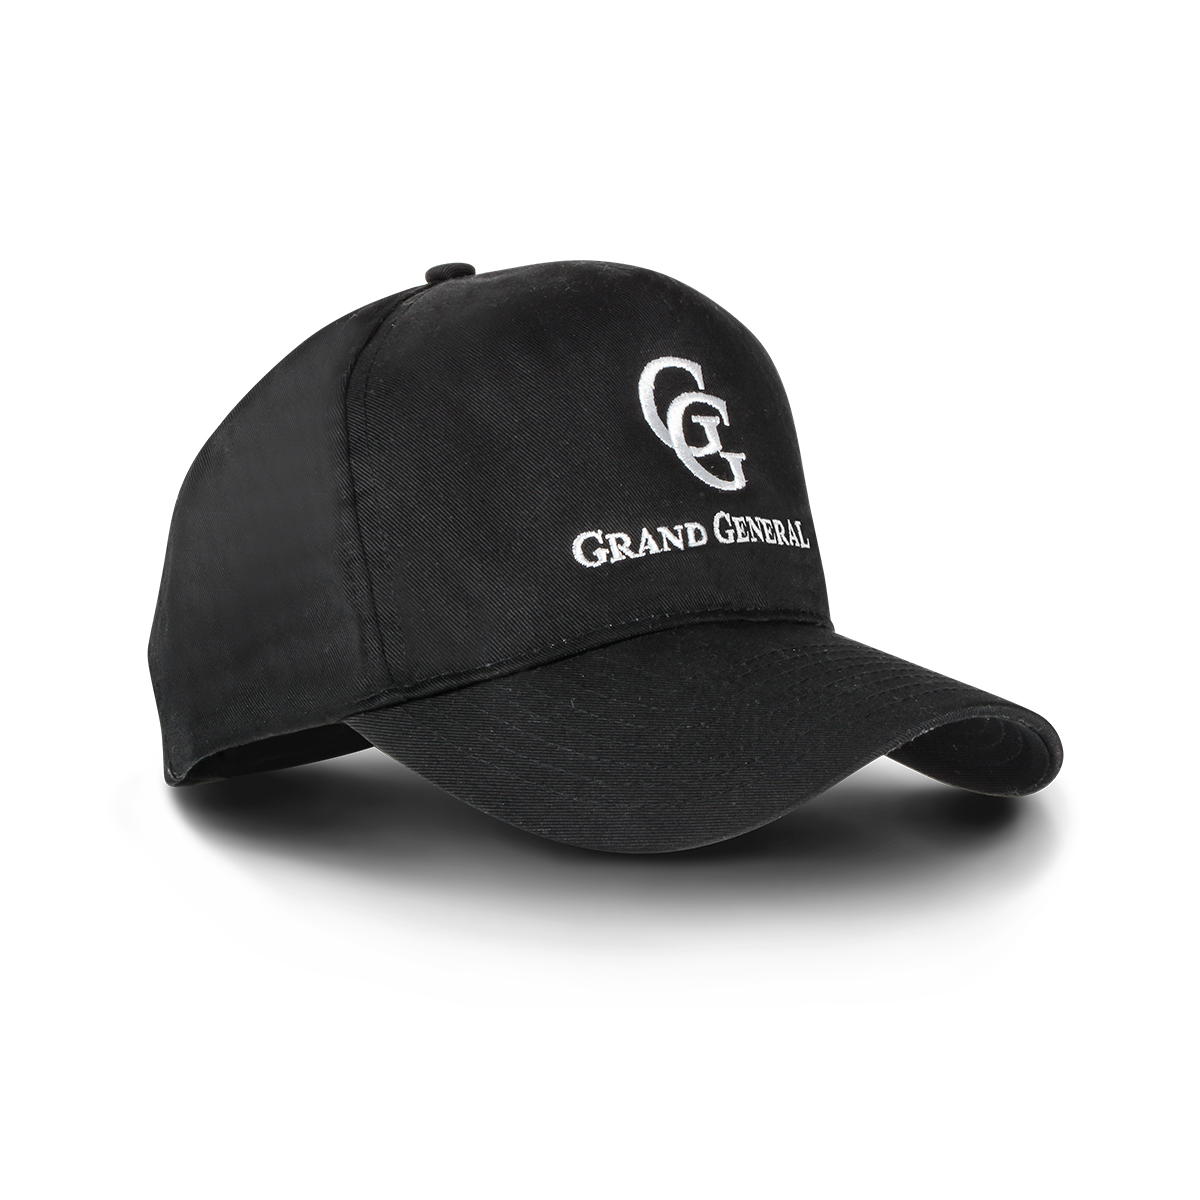 Grand General Hat (Note: Color and style may vary depending on product availability. )